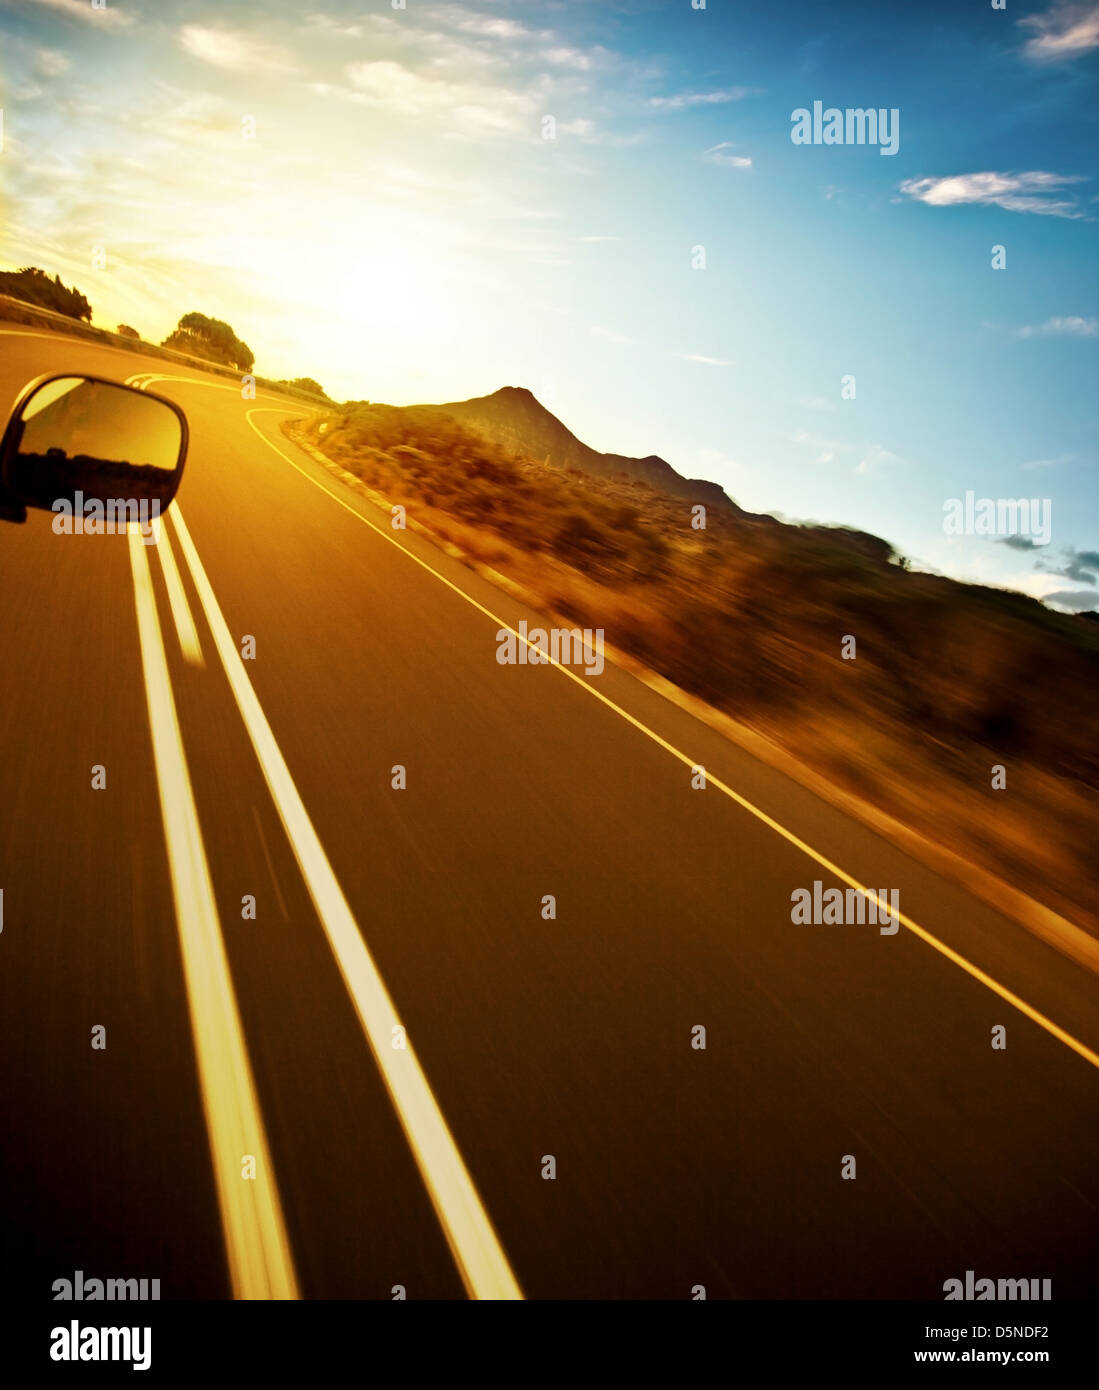 Road trip, car on the highway, speed drive, road-trip in sunny day, journey and freedom concept, travel and vacation - Stock Image